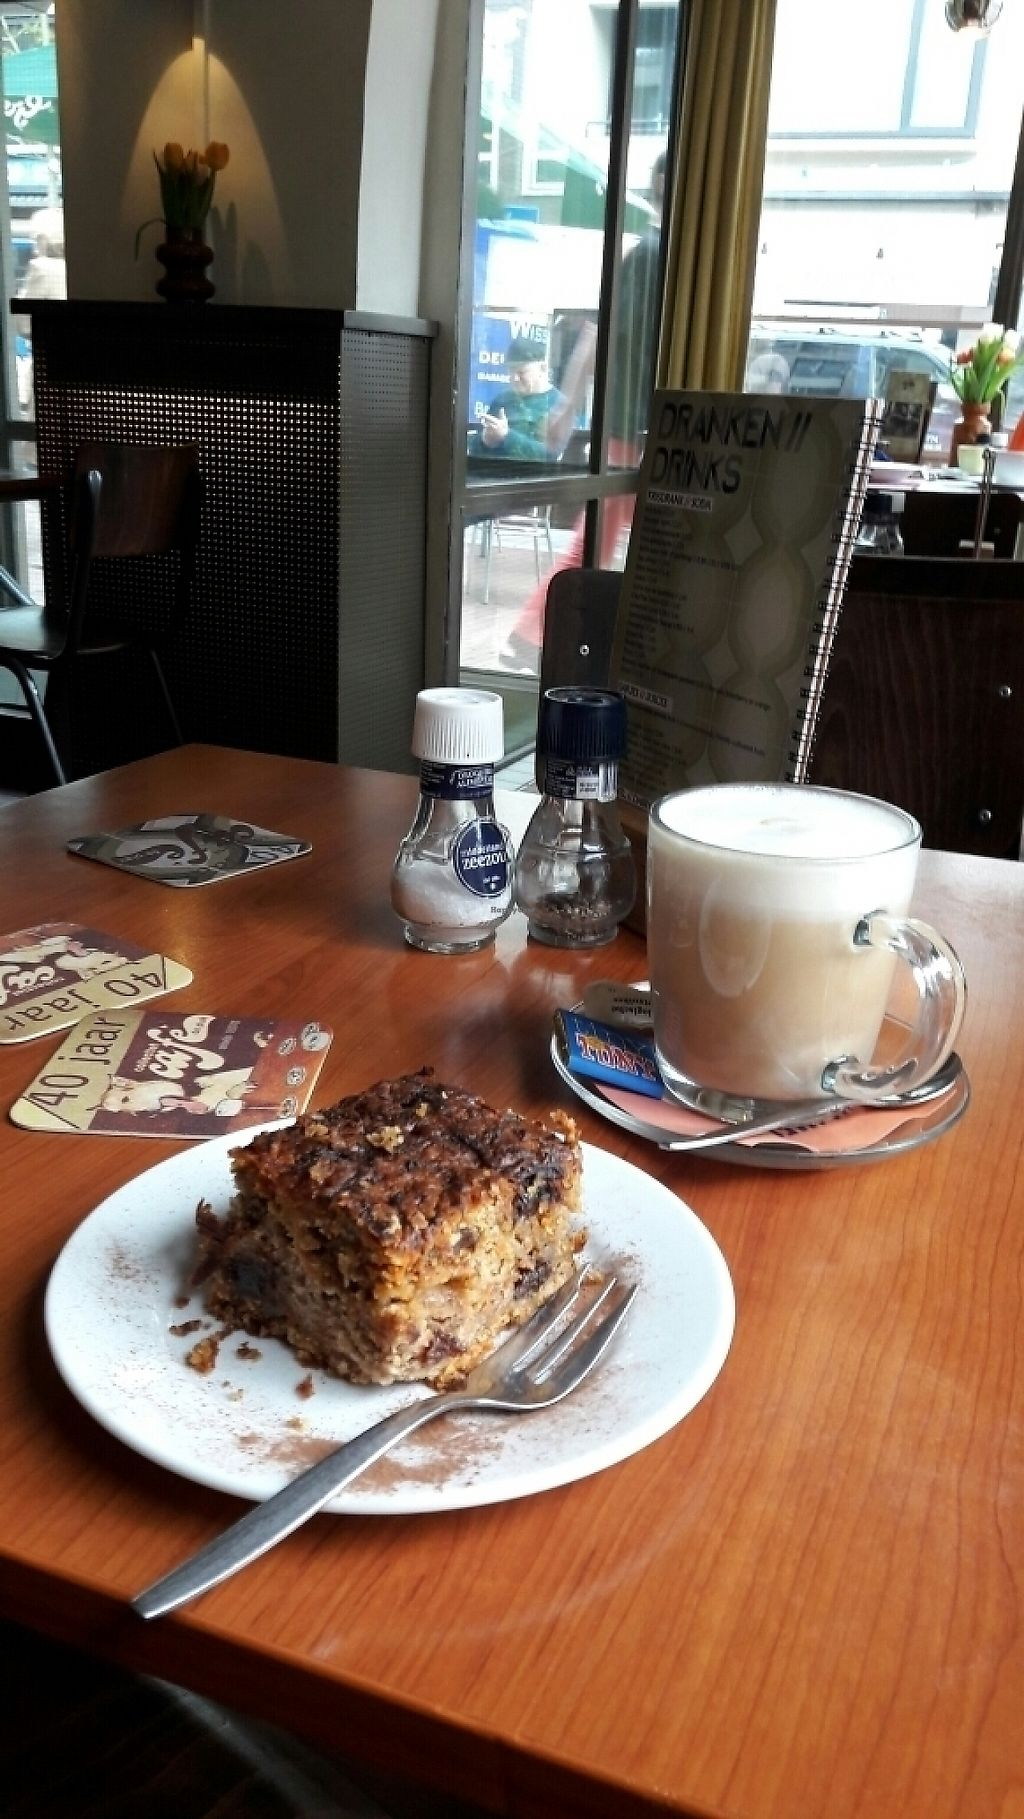 "Photo of Cafe de Plak  by <a href=""/members/profile/aniareyouok"">aniareyouok</a> <br/>vegan carrotcake and soja latte macchiato with vegan tiny tony (chocolate) <br/> May 19, 2017  - <a href='/contact/abuse/image/36921/260316'>Report</a>"